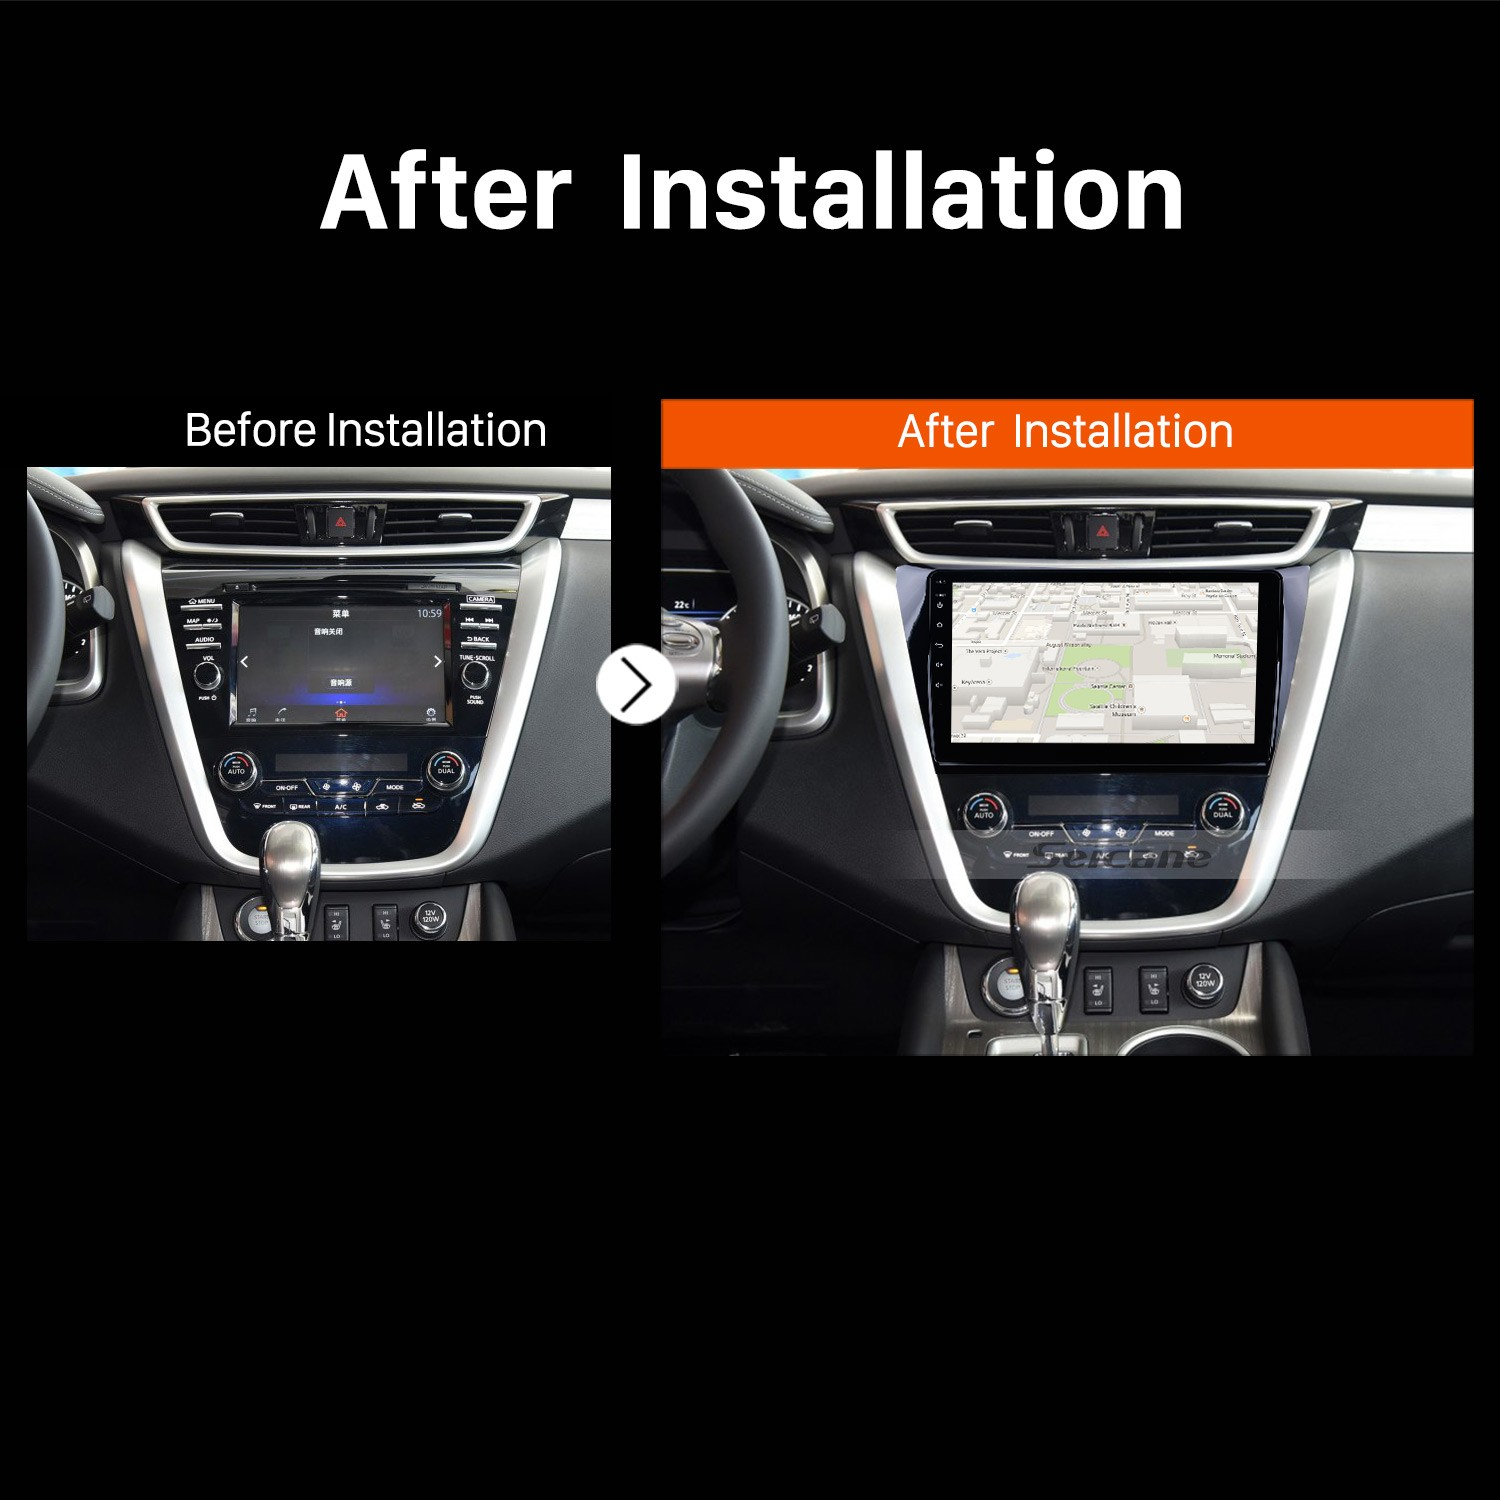 How To Install And Upgrade 2015 Nissan Murano Gps Navigation Installation A Car Stereo Radio After